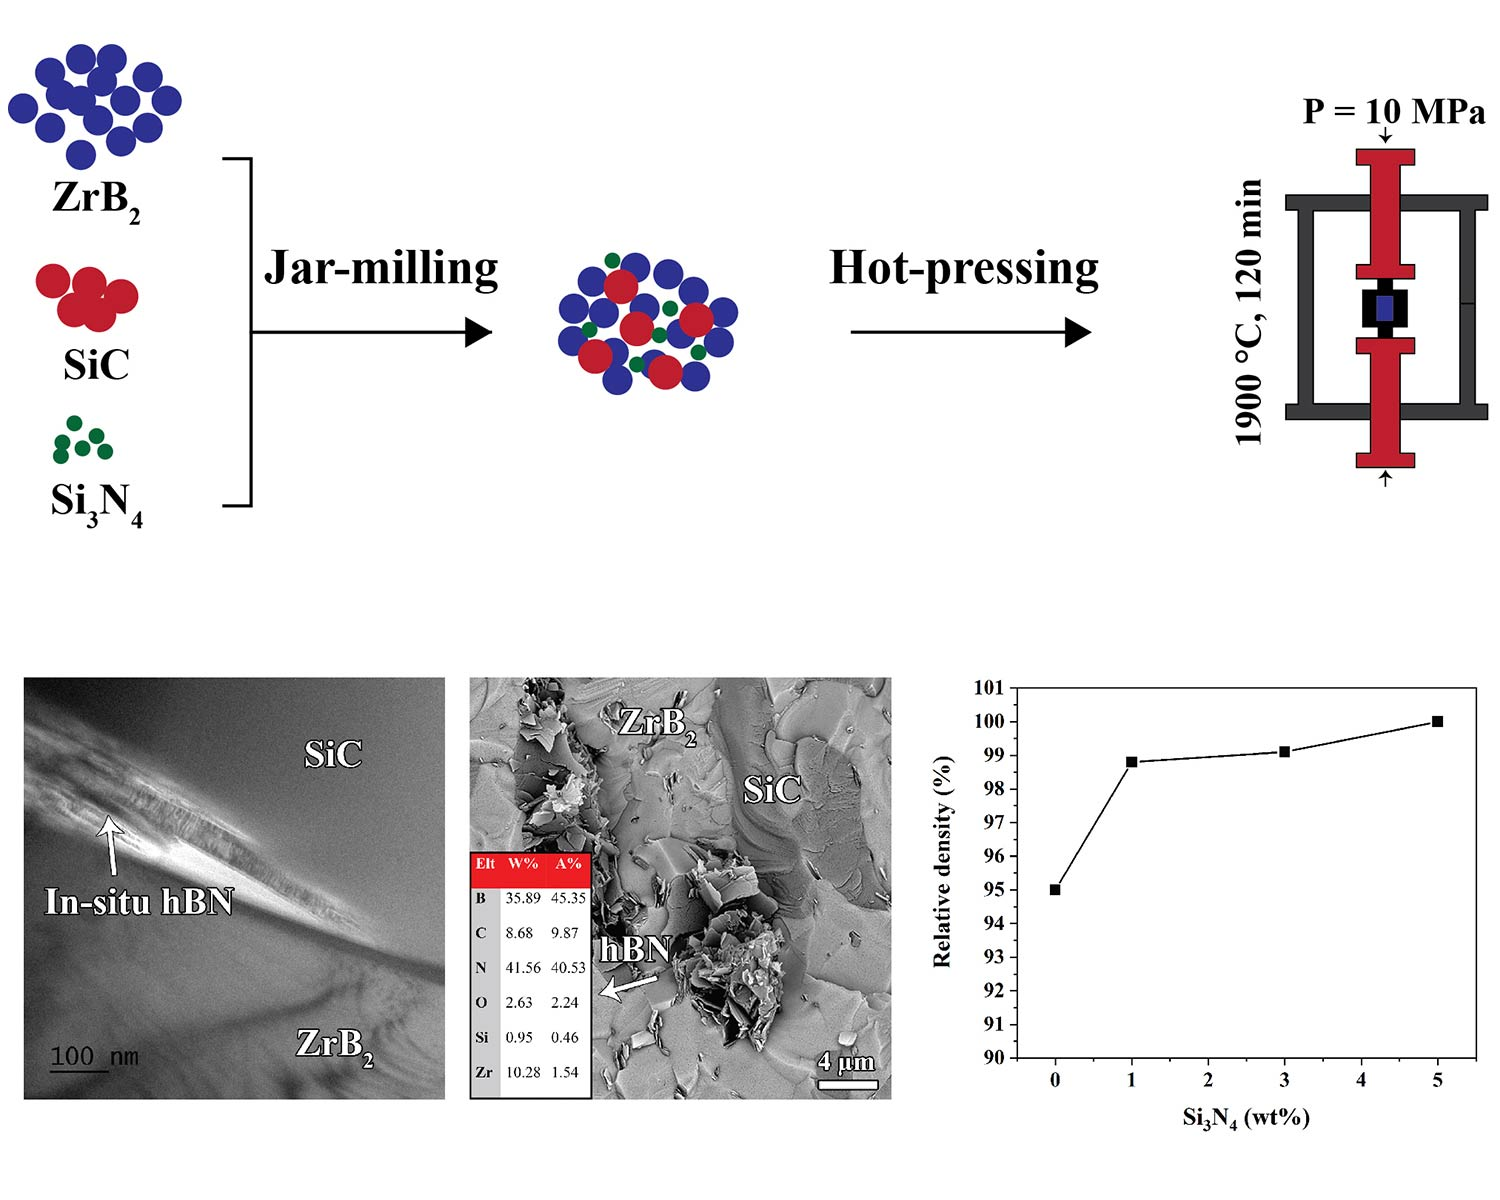 Role of Si3N4 on microstructure and hardness of hot-pressed ZrB2−SiC composites